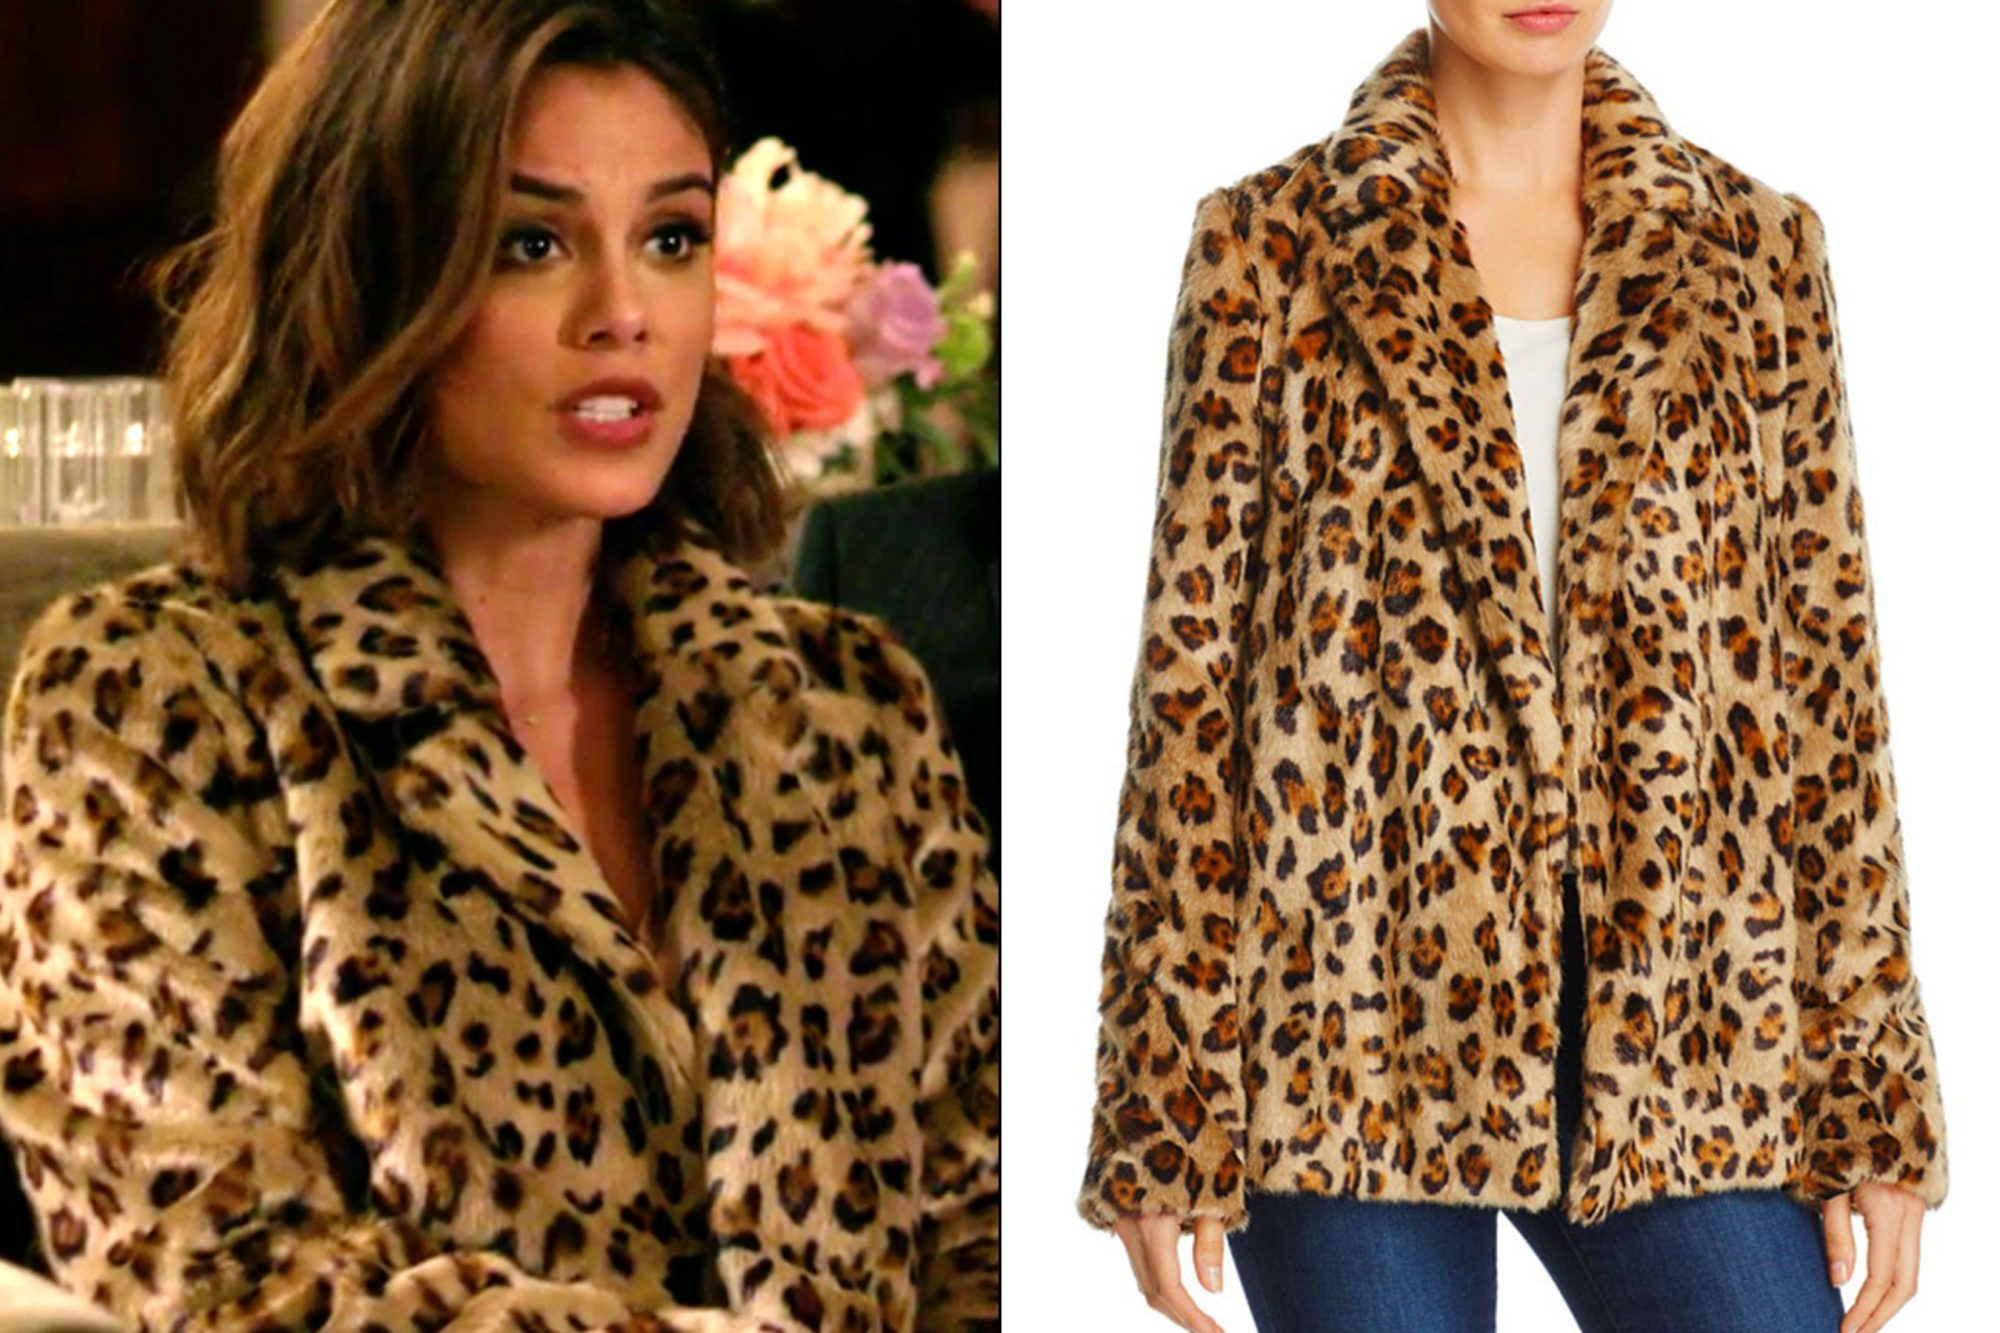 Cristal Flores' (Nathalie Kelley) leopard print coat on Dynasty